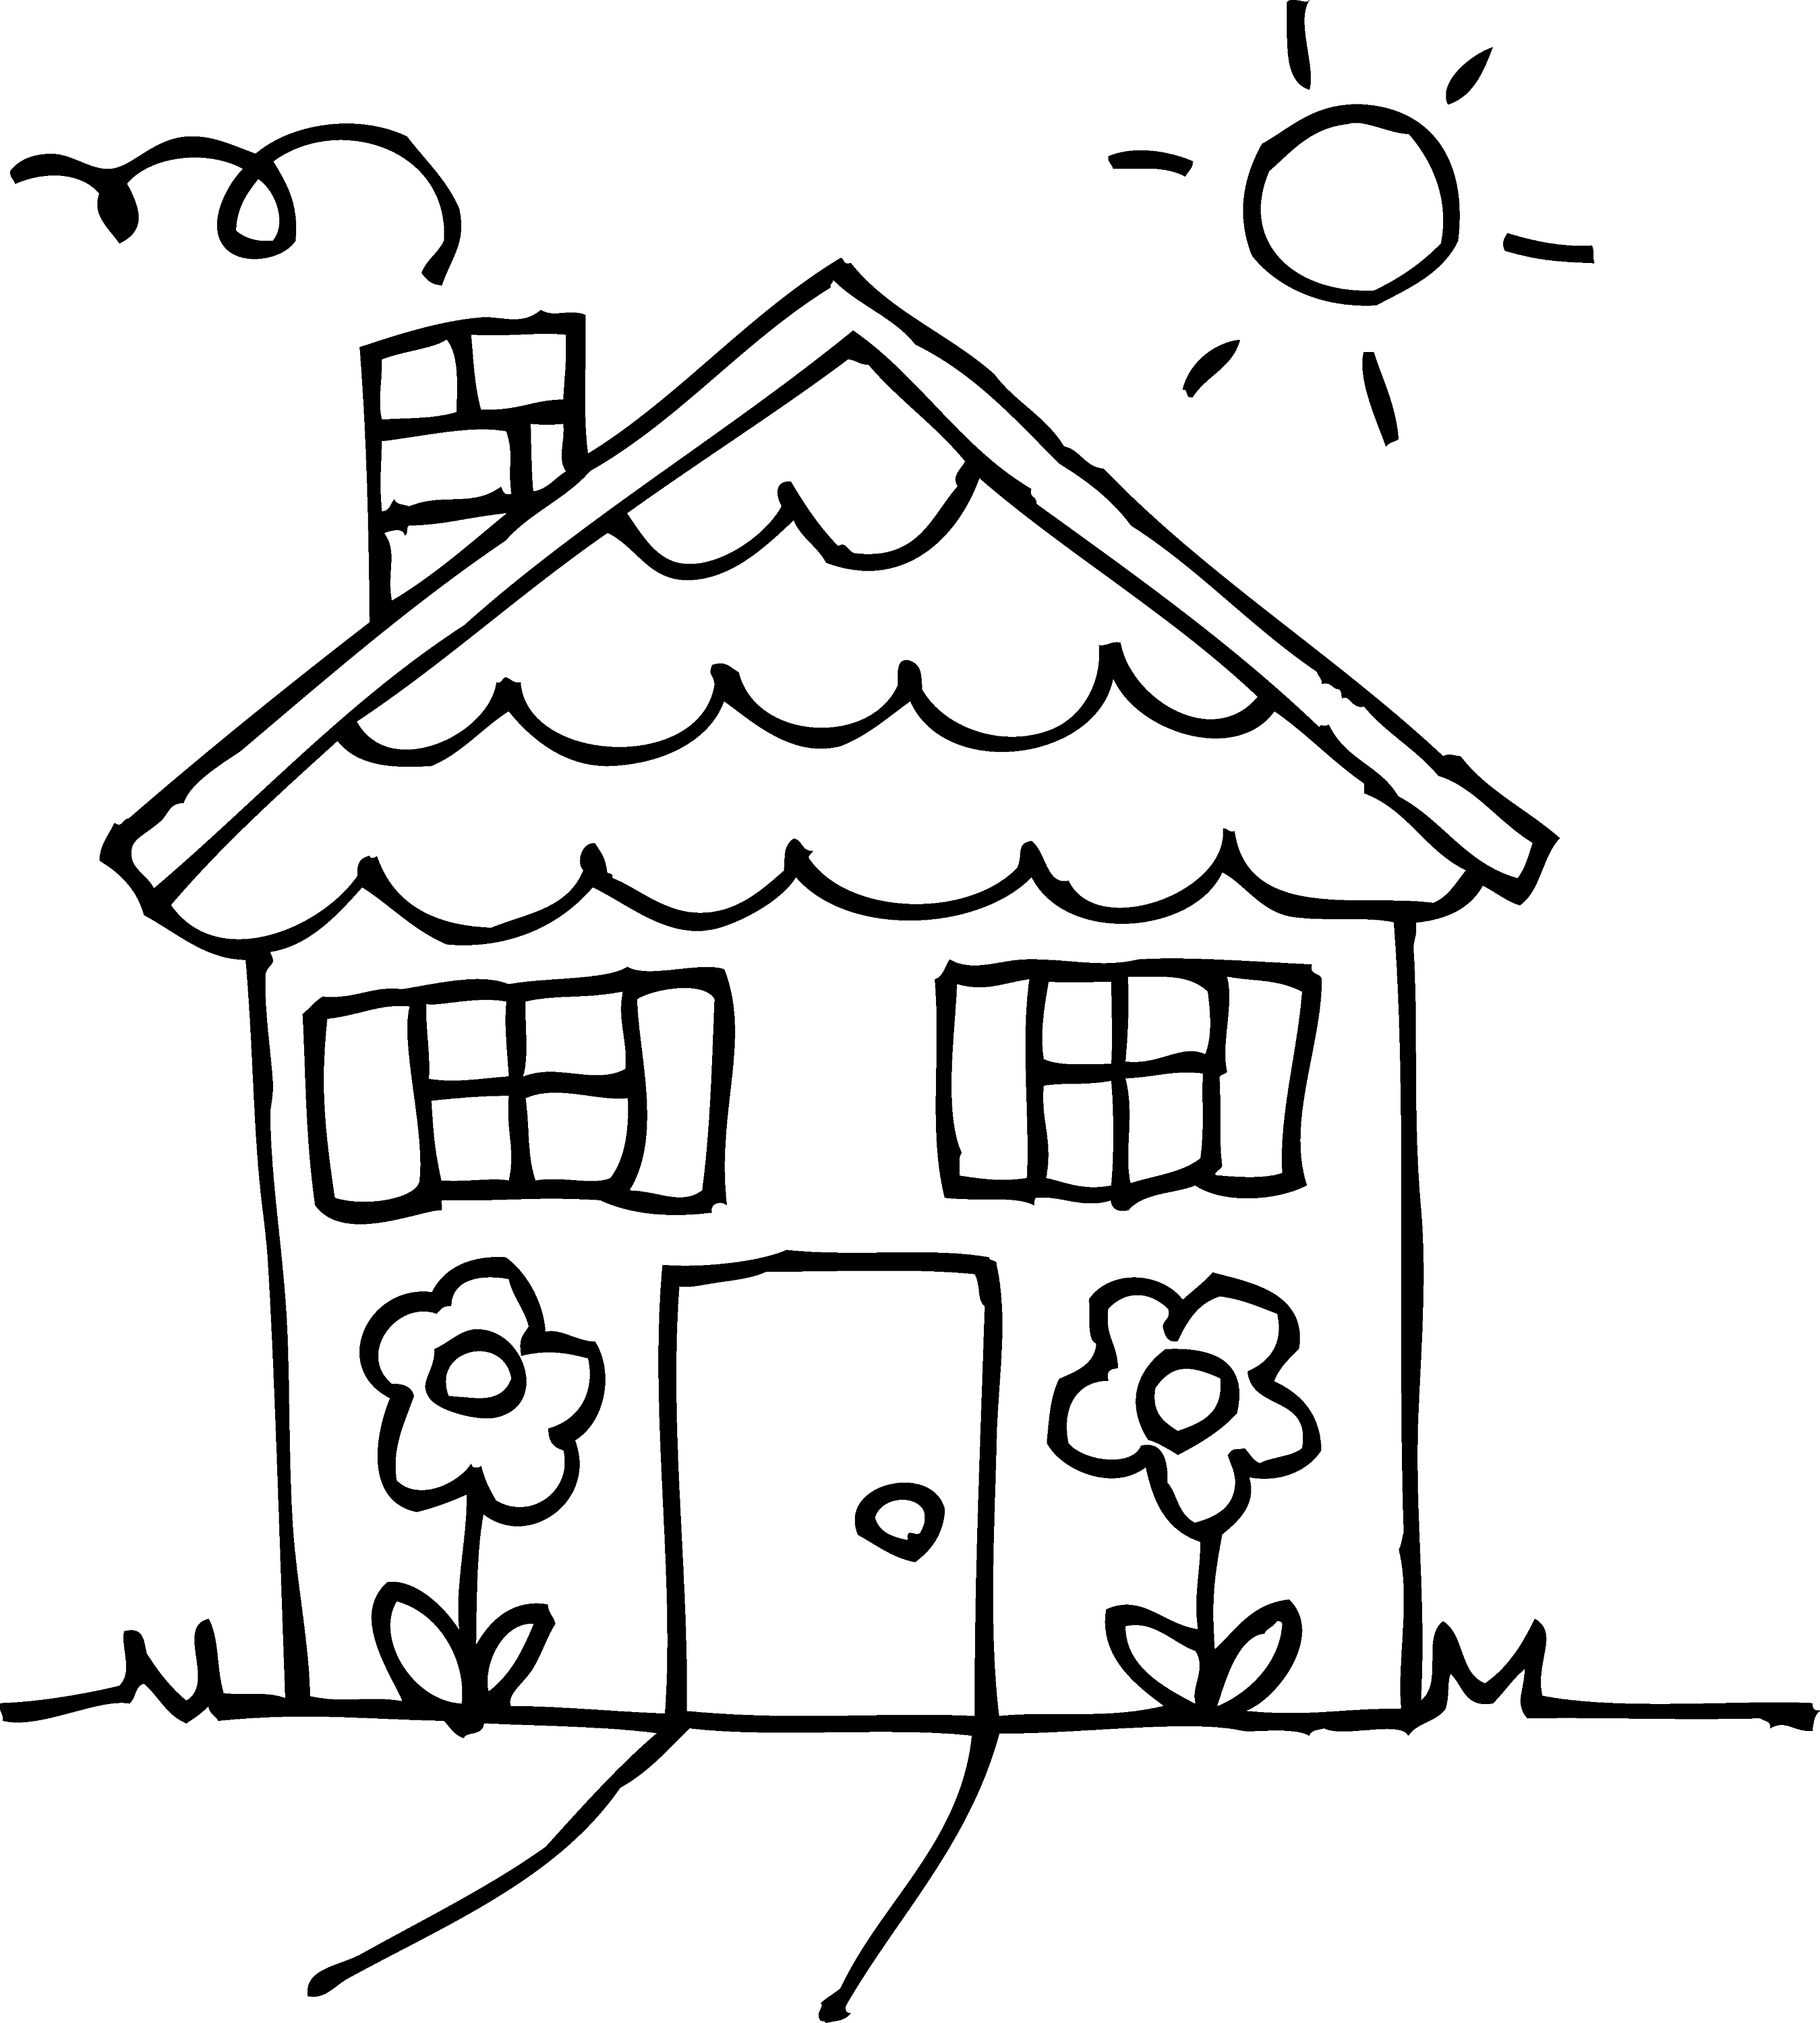 home coloring image best house clipart coloring black white 29985 image home coloring